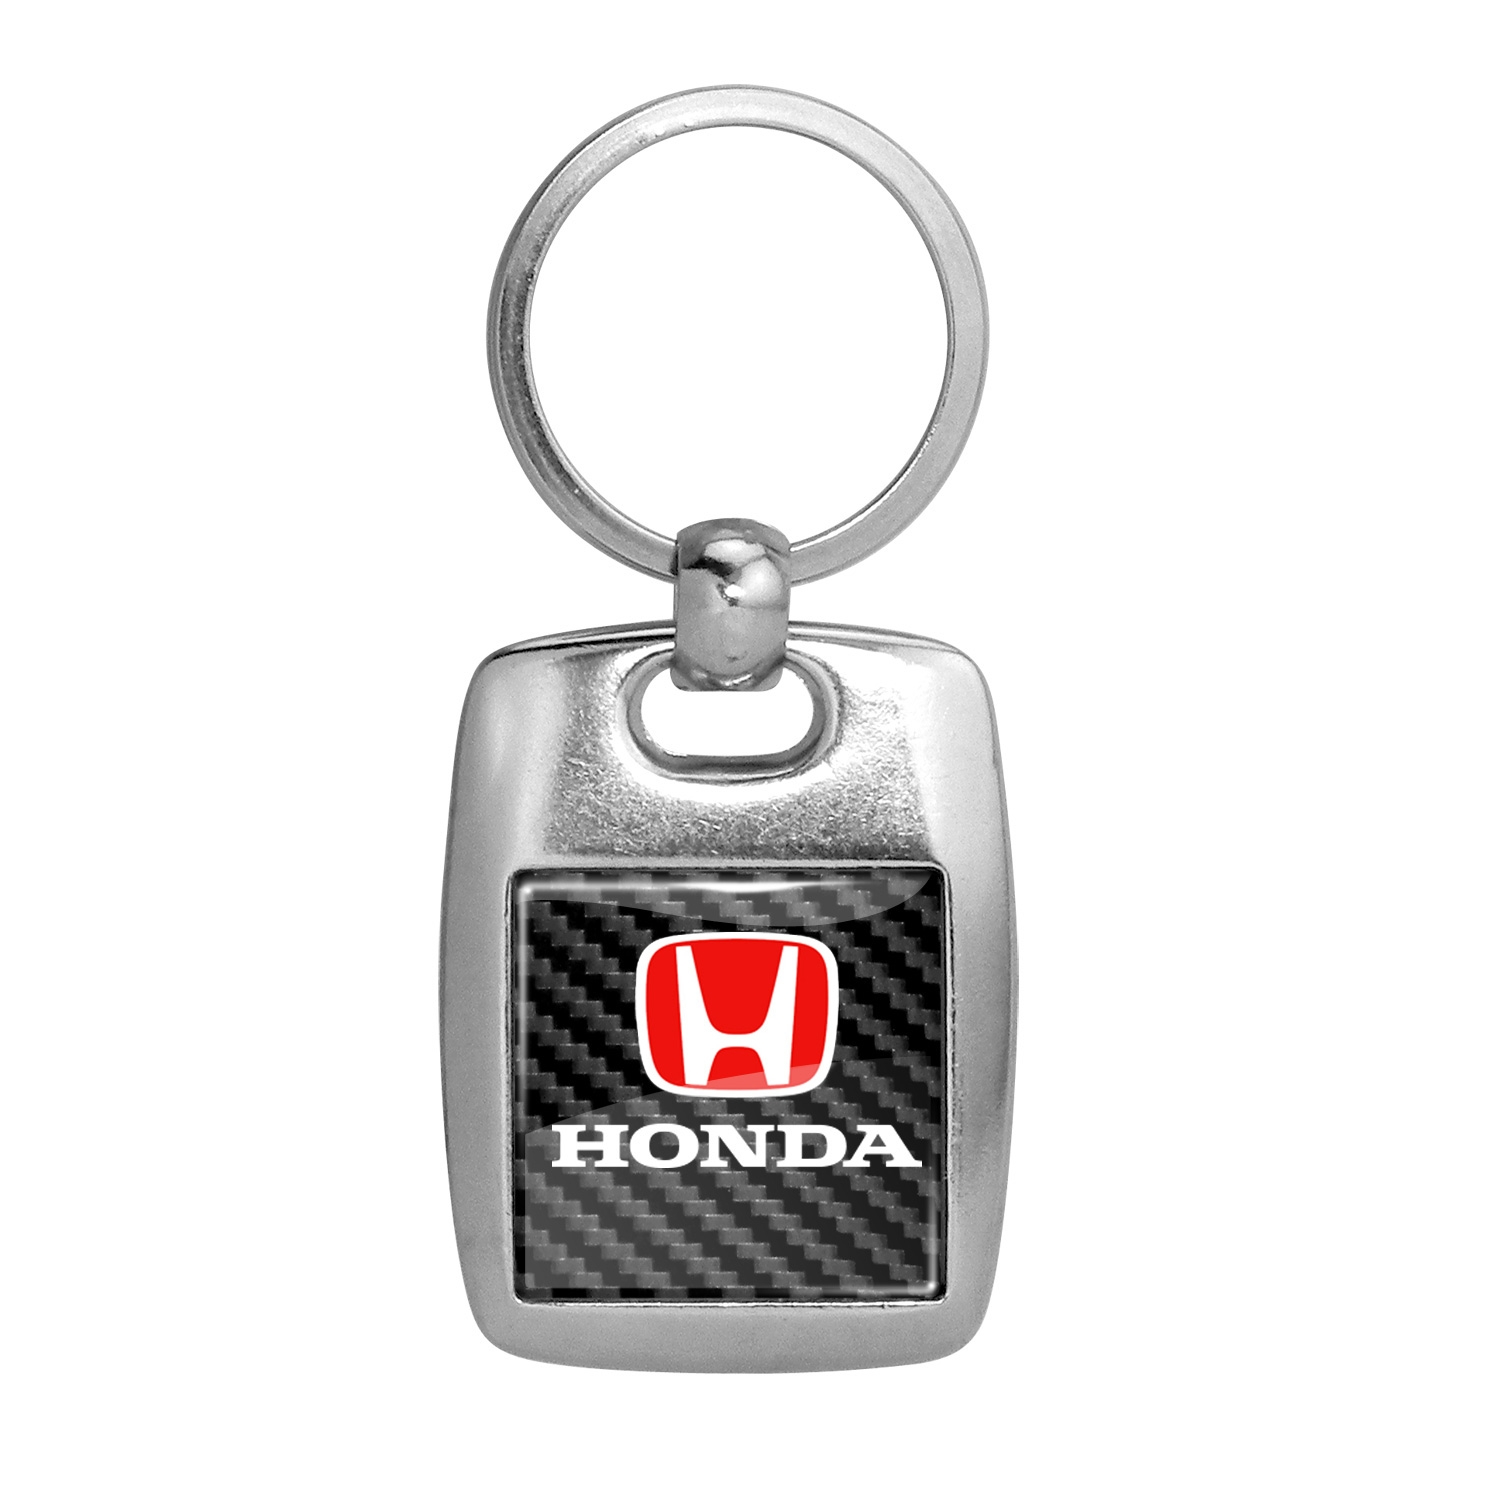 Honda Logo in Red on Carbon Fiber Backing Brush Metal Key Chain